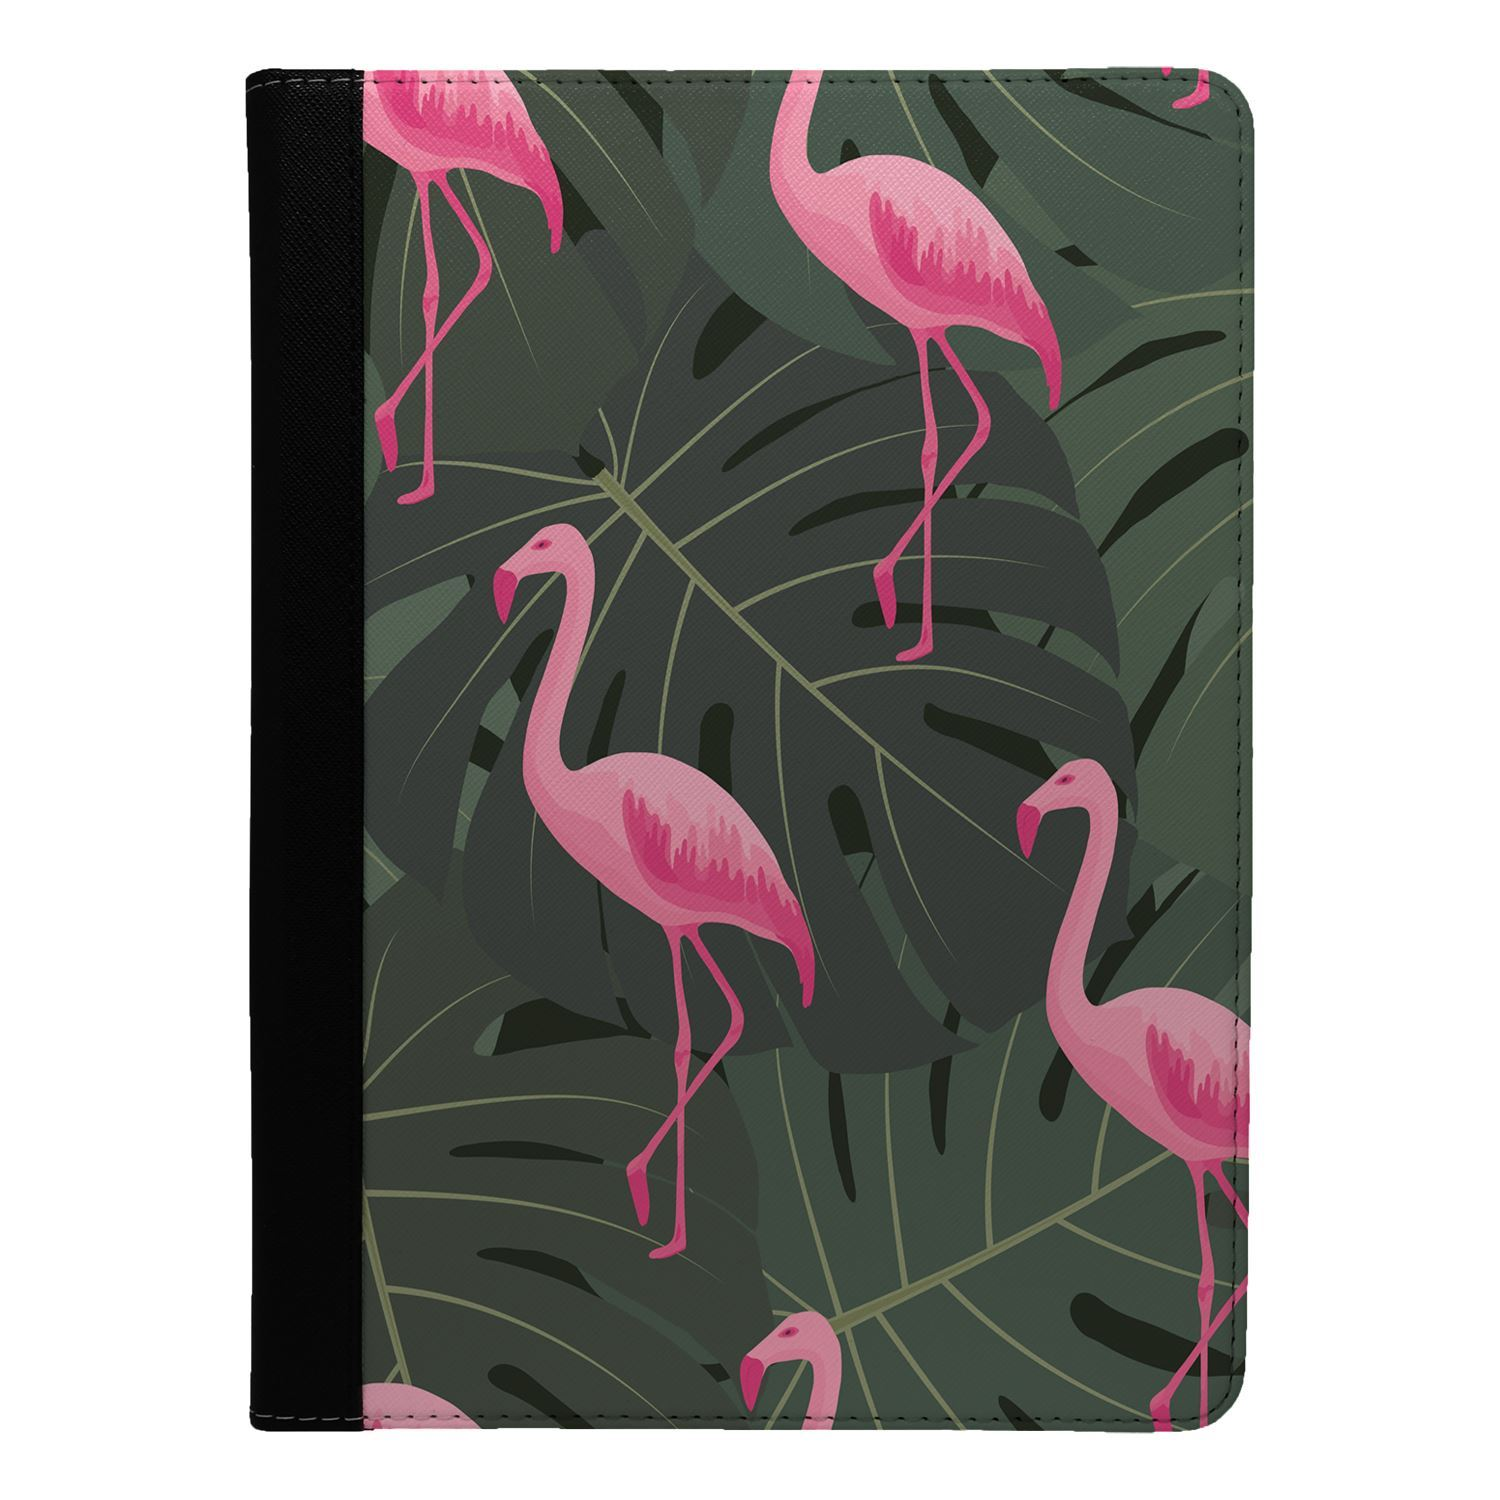 Tropical-Flamingo-Patron-Funda-Libro-para-Apple-Ipad-S9201